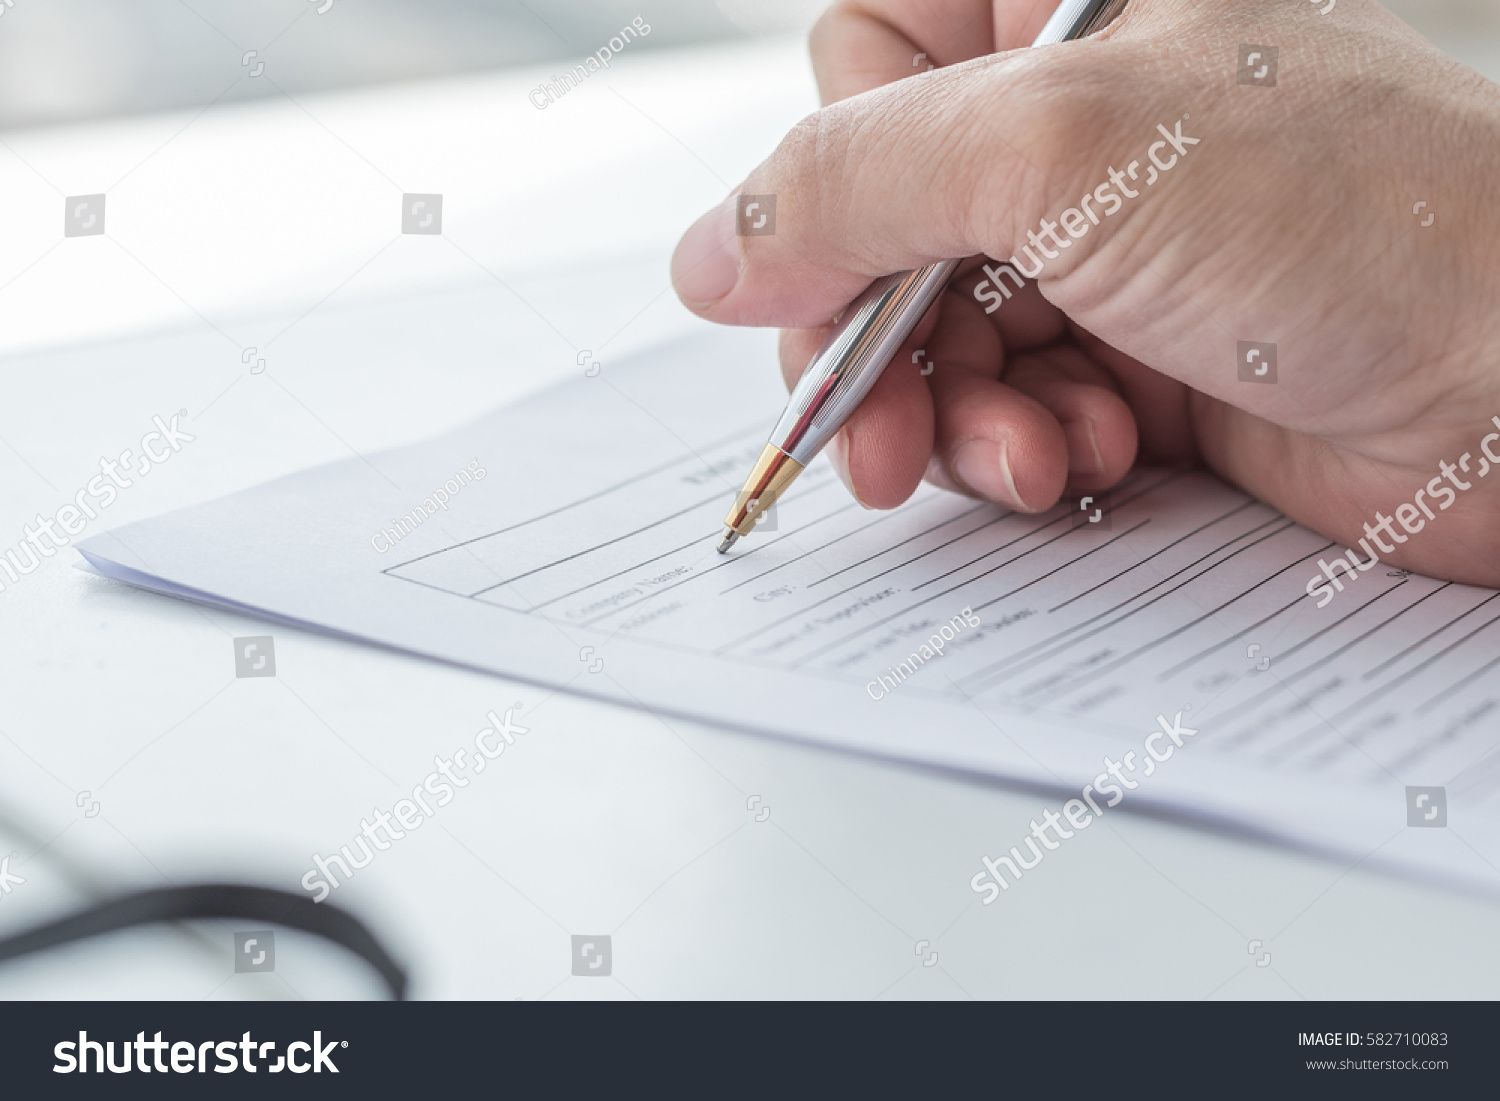 Applicant Filling Company Application Form Document Stock Photo ...